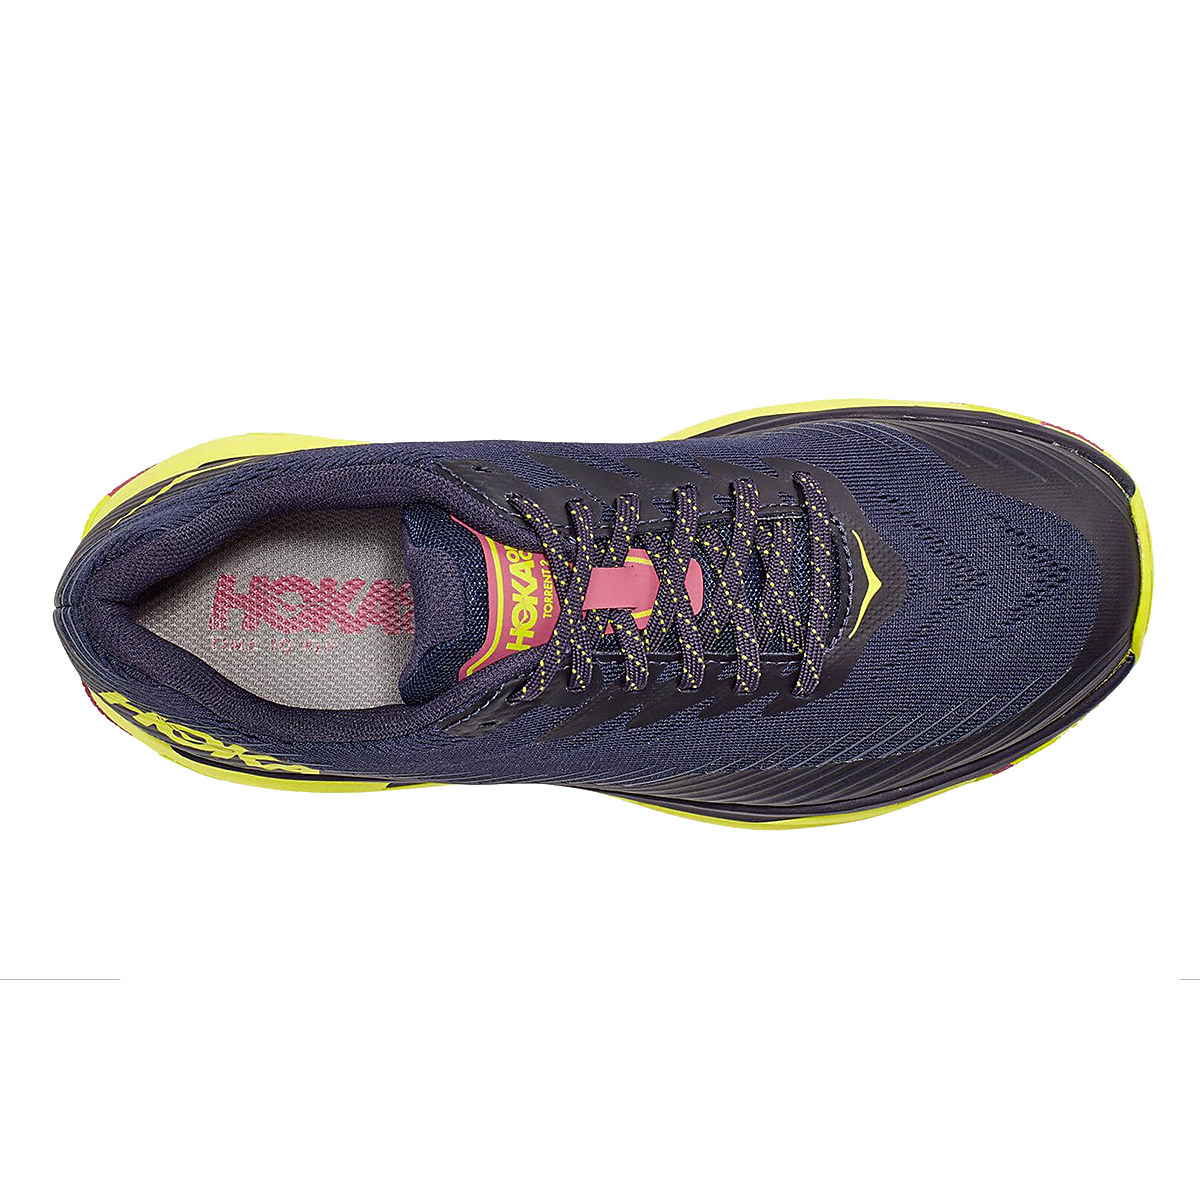 Women's Hoka One One Torrent 2 Trail Running Shoe - Color: Deep Well/Eve - Size: 5 - Width: Regular, Deep Well/Eve, large, image 3